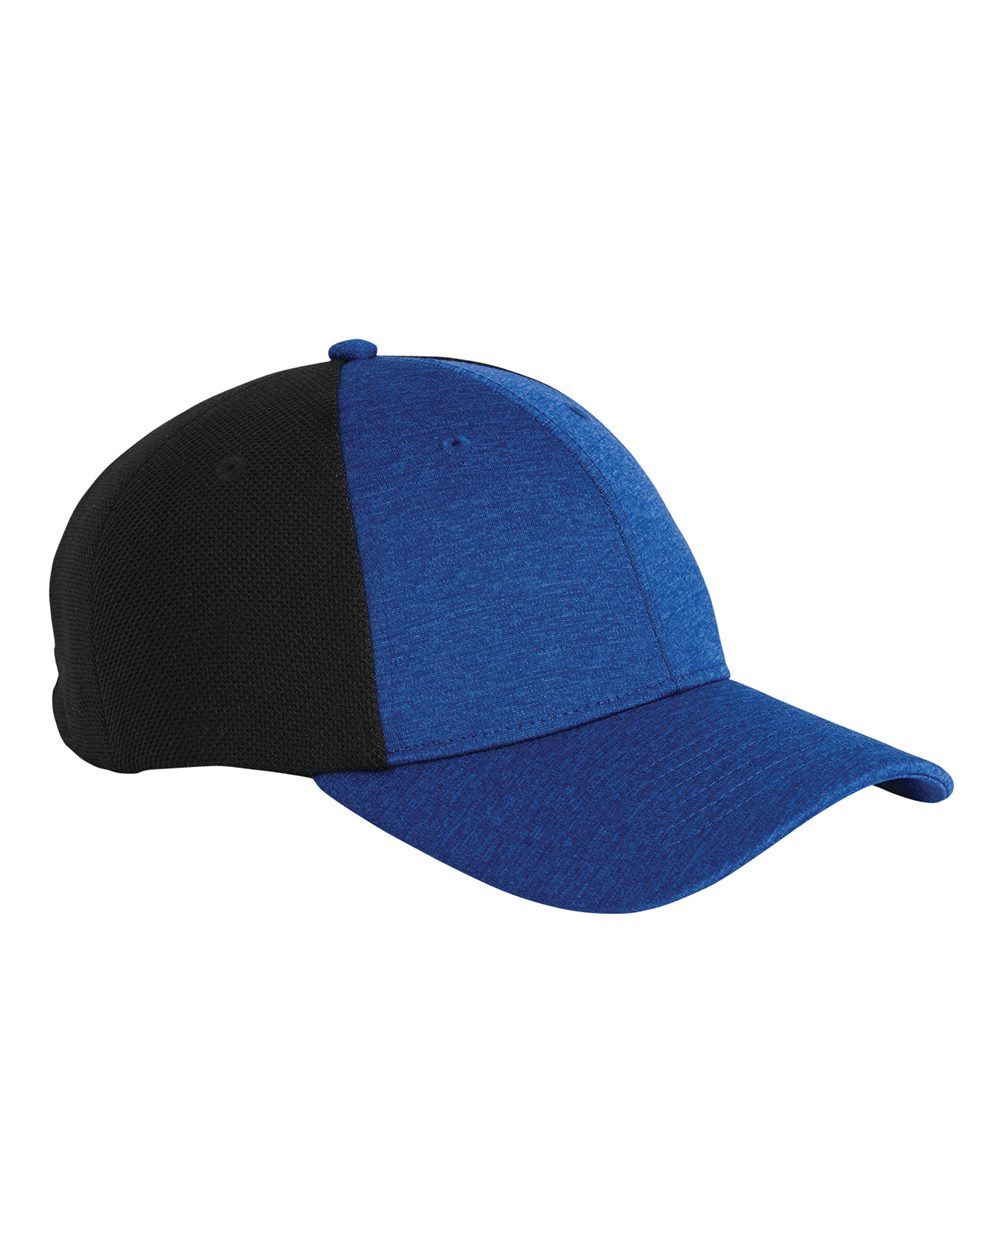 Sportsman SP910 - Shadow Tech Marled Mesh Back Cap